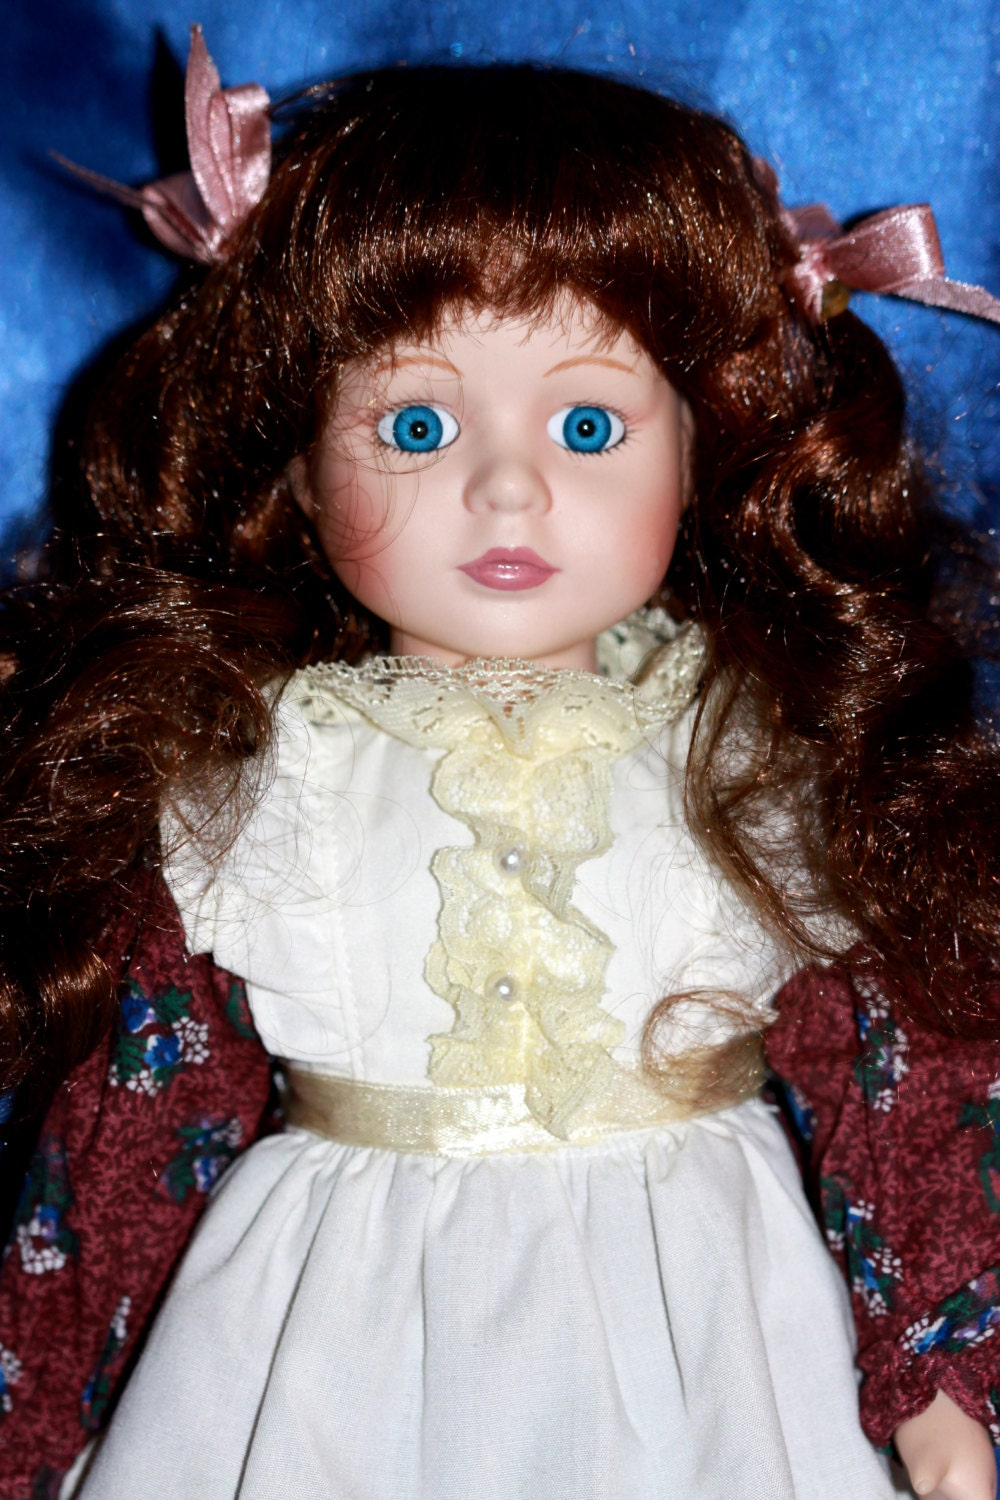 Geppeddo Doll Porcelain Vintage Collectible Z1438